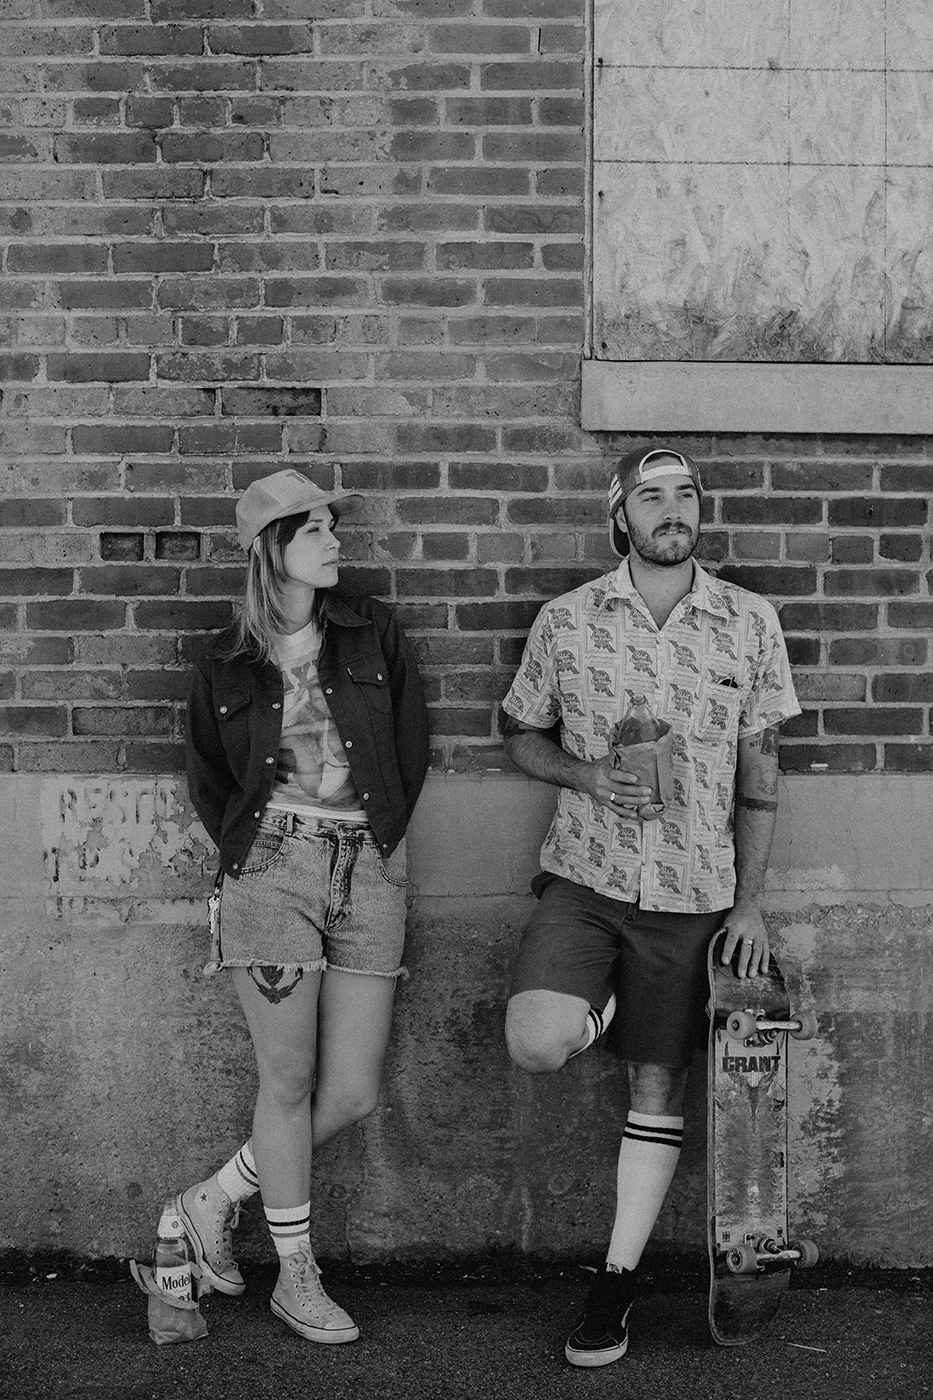 70s-themed-skateboarding-engagement-session-denver-colorado-44.jpg